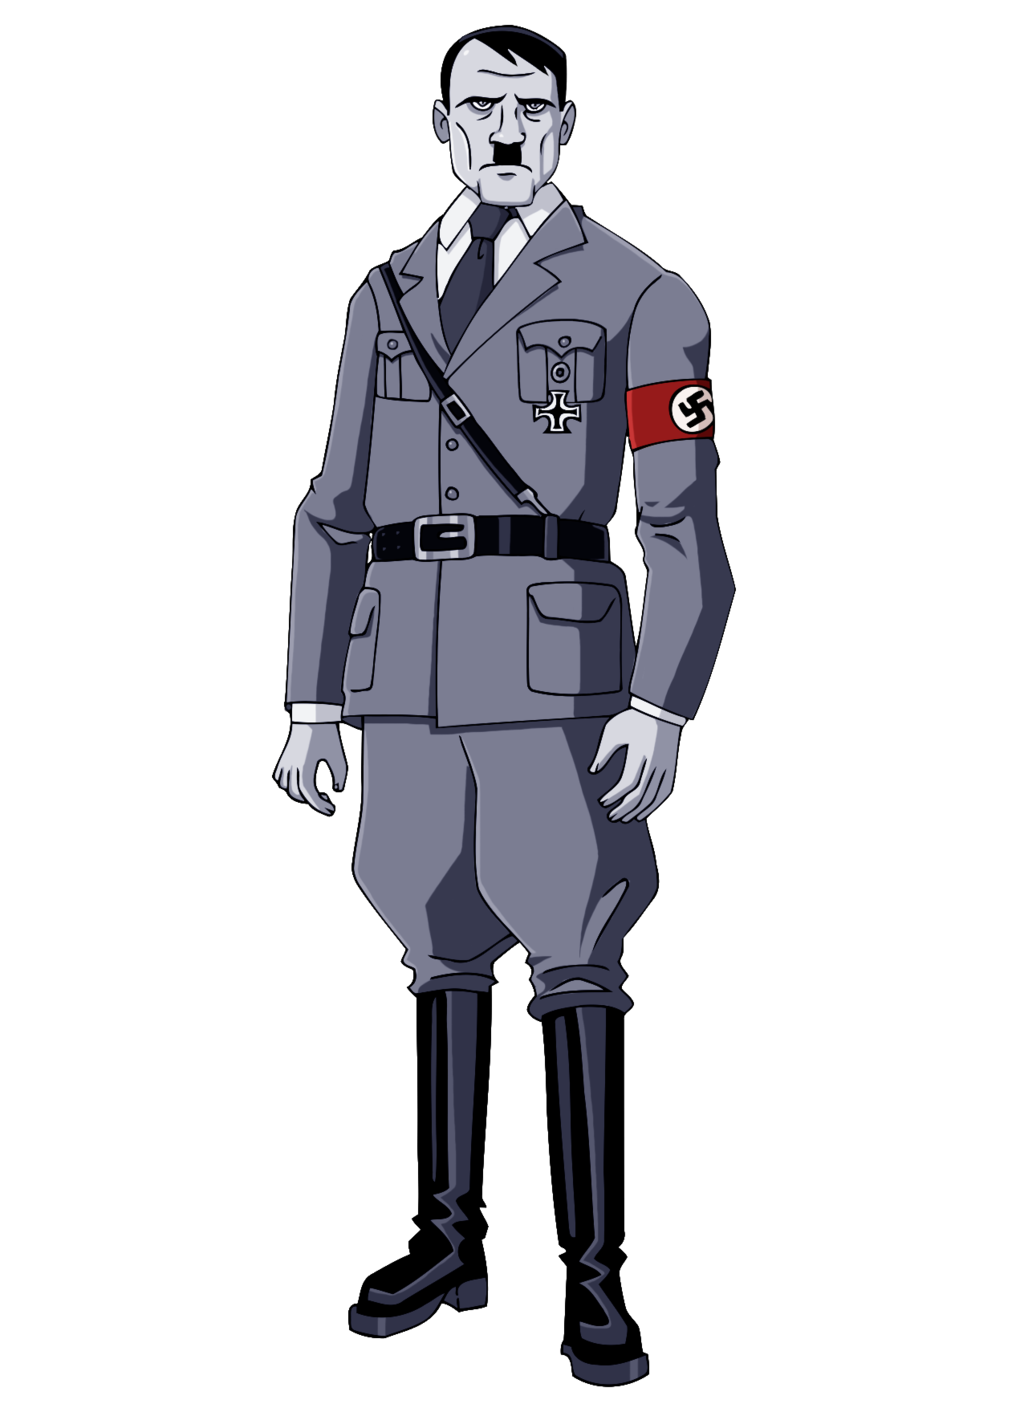 adolf hitler black and white glee chan deviantart #26636